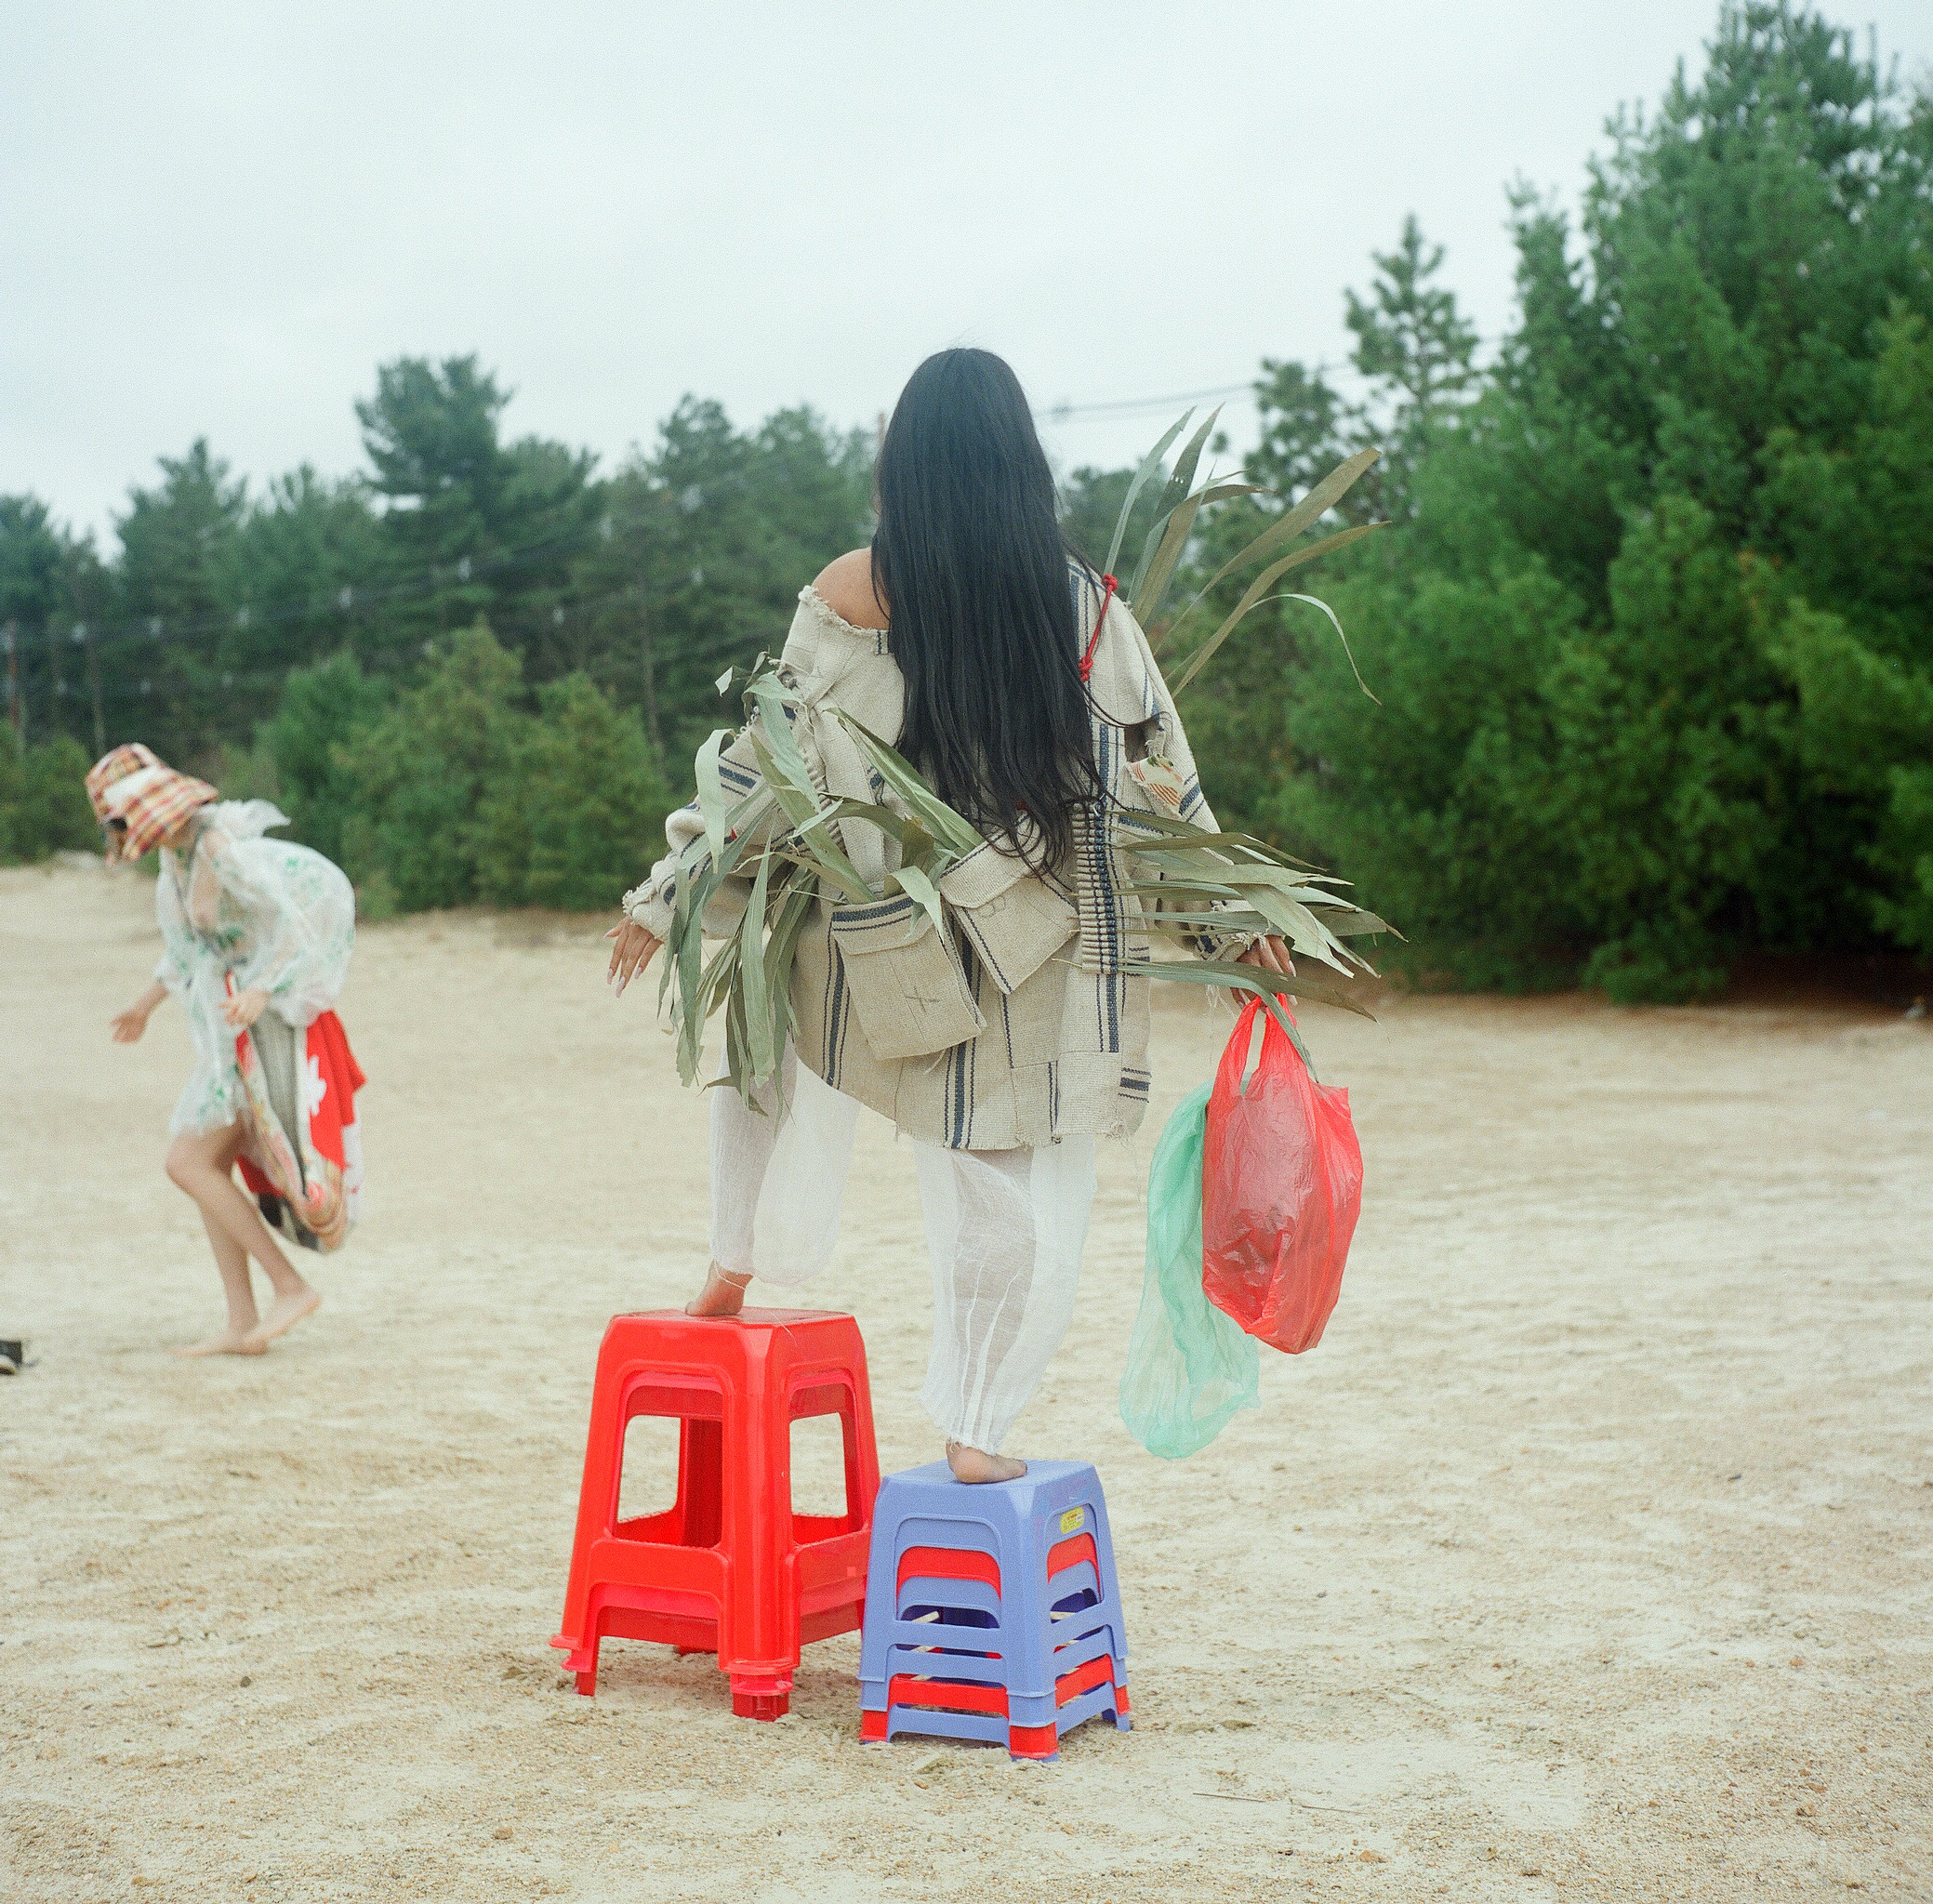 Crossing the Street w/ Milky Eyes Collection by Justine Nguyen